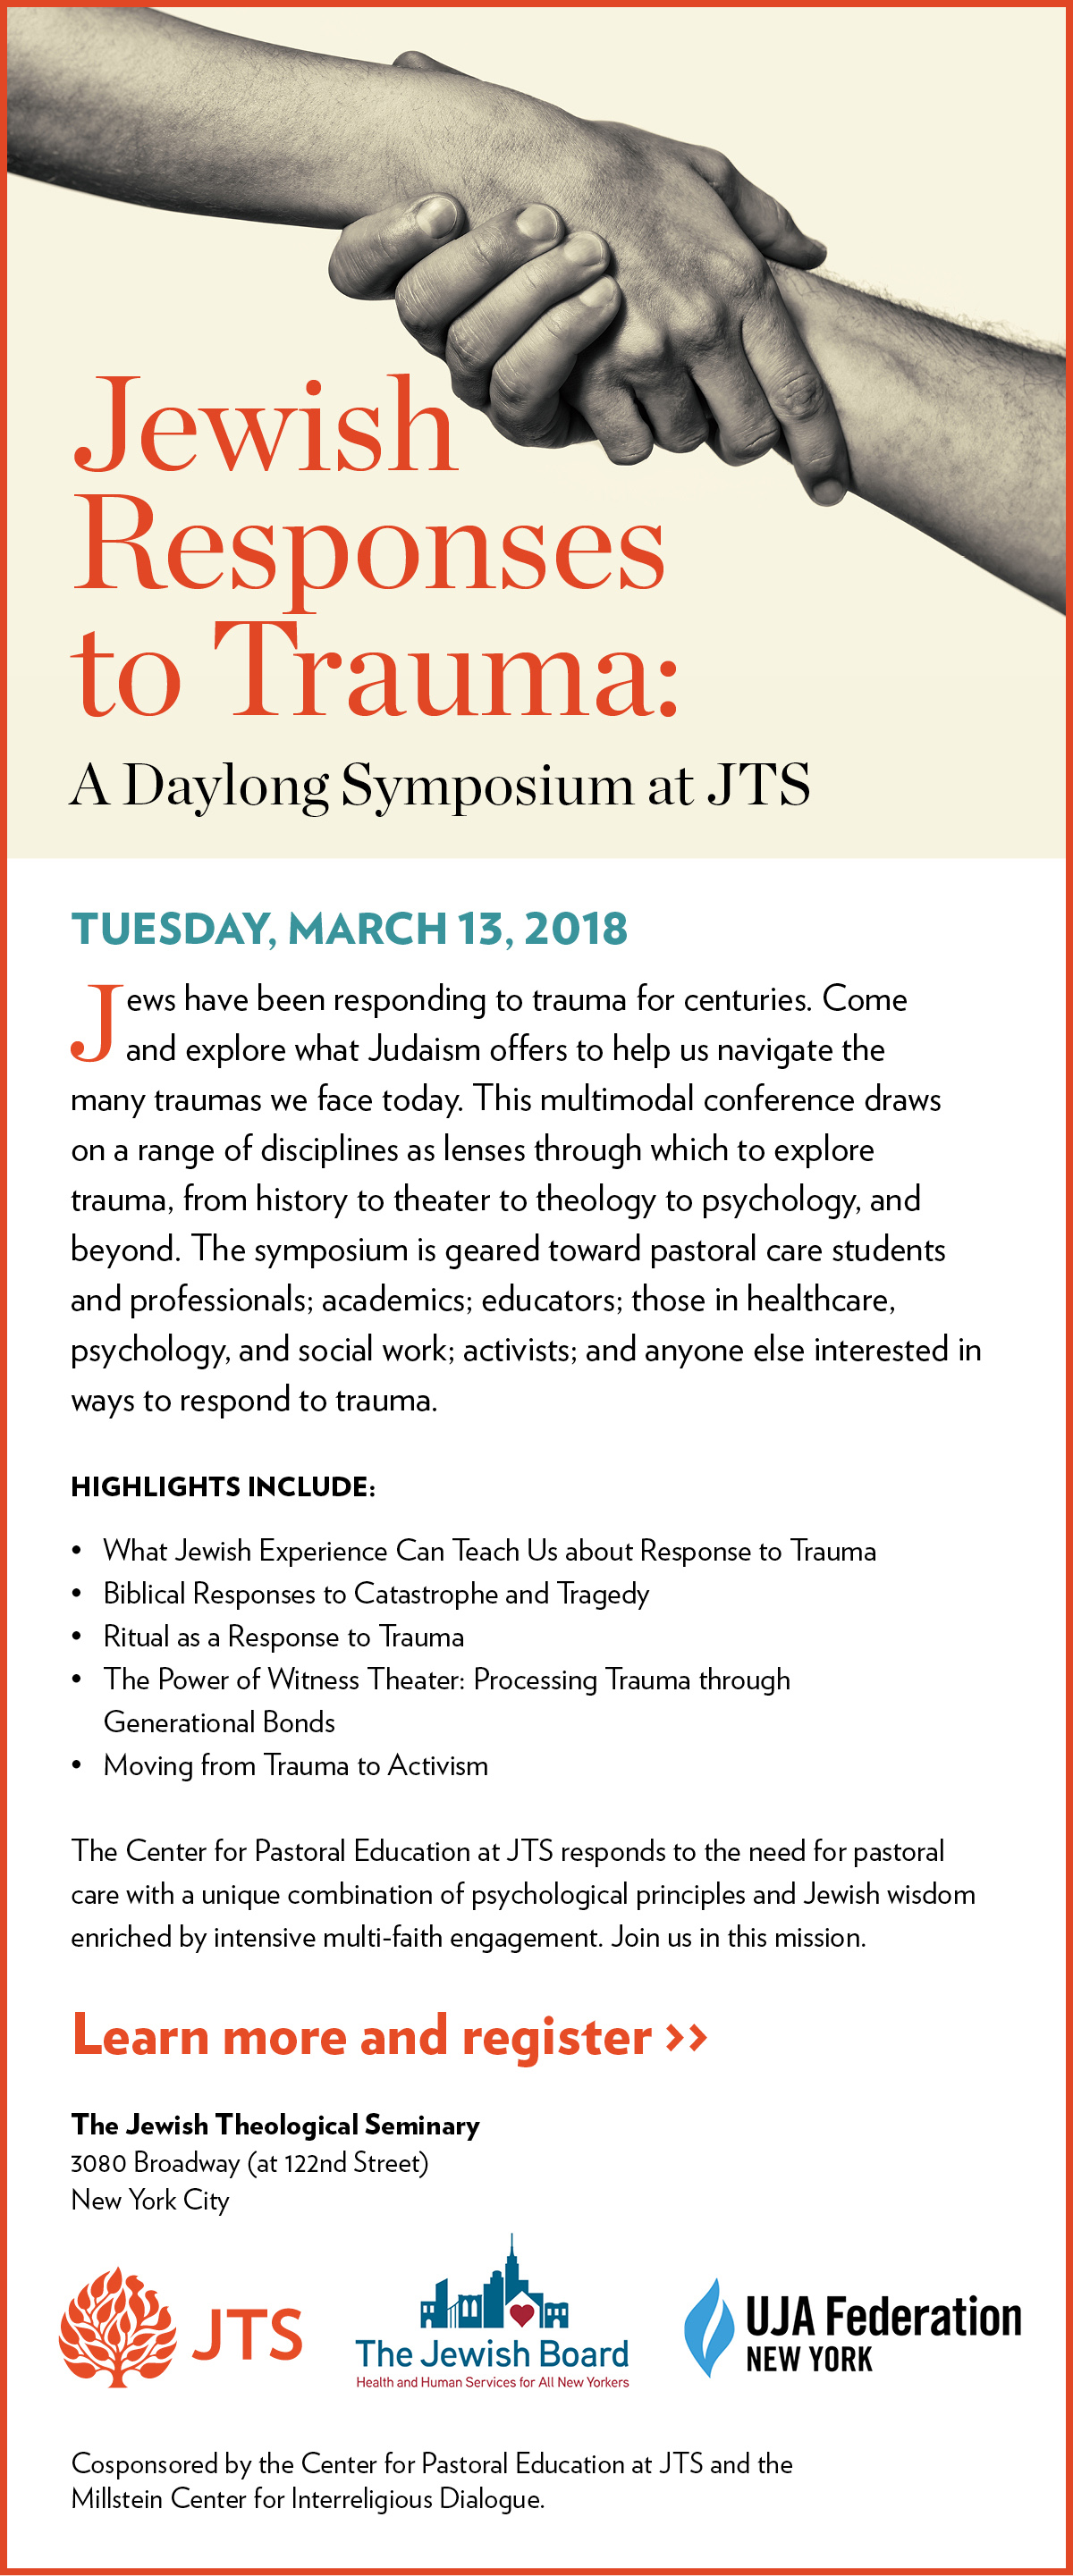 Jewish Responses to Trauma: A Daylong Symposium at JTS - Tuesday, March 13